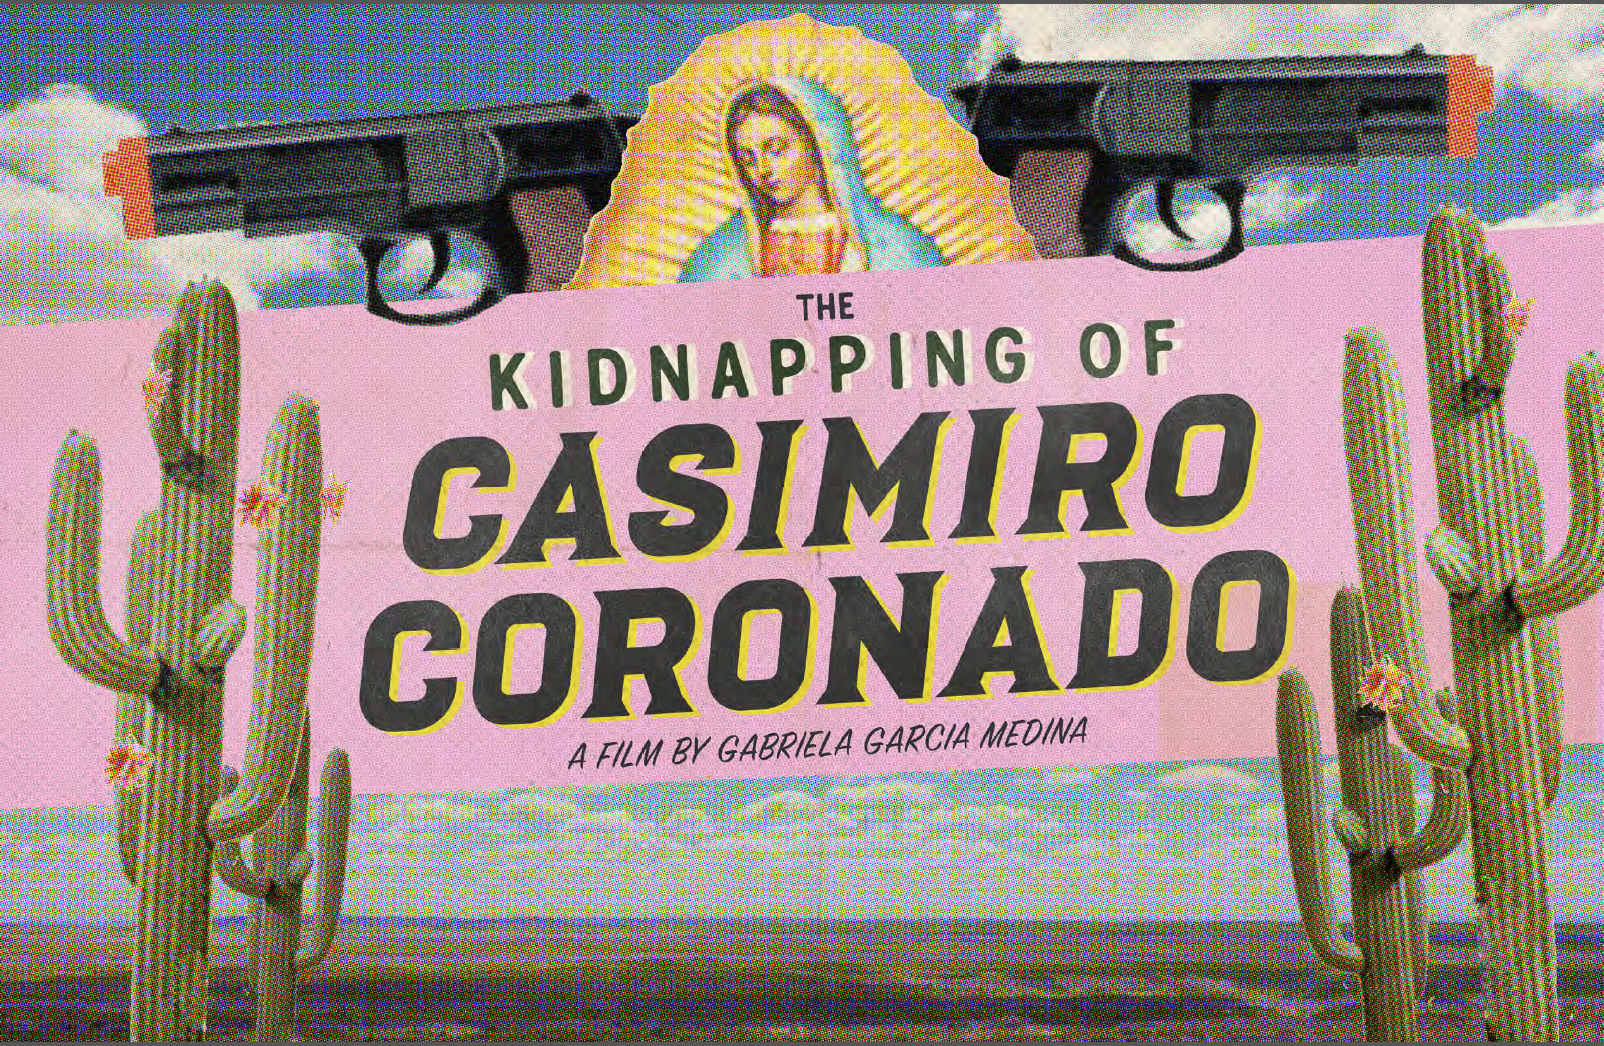 THE KIDNAPPING OF CASIMIRO CORONADO